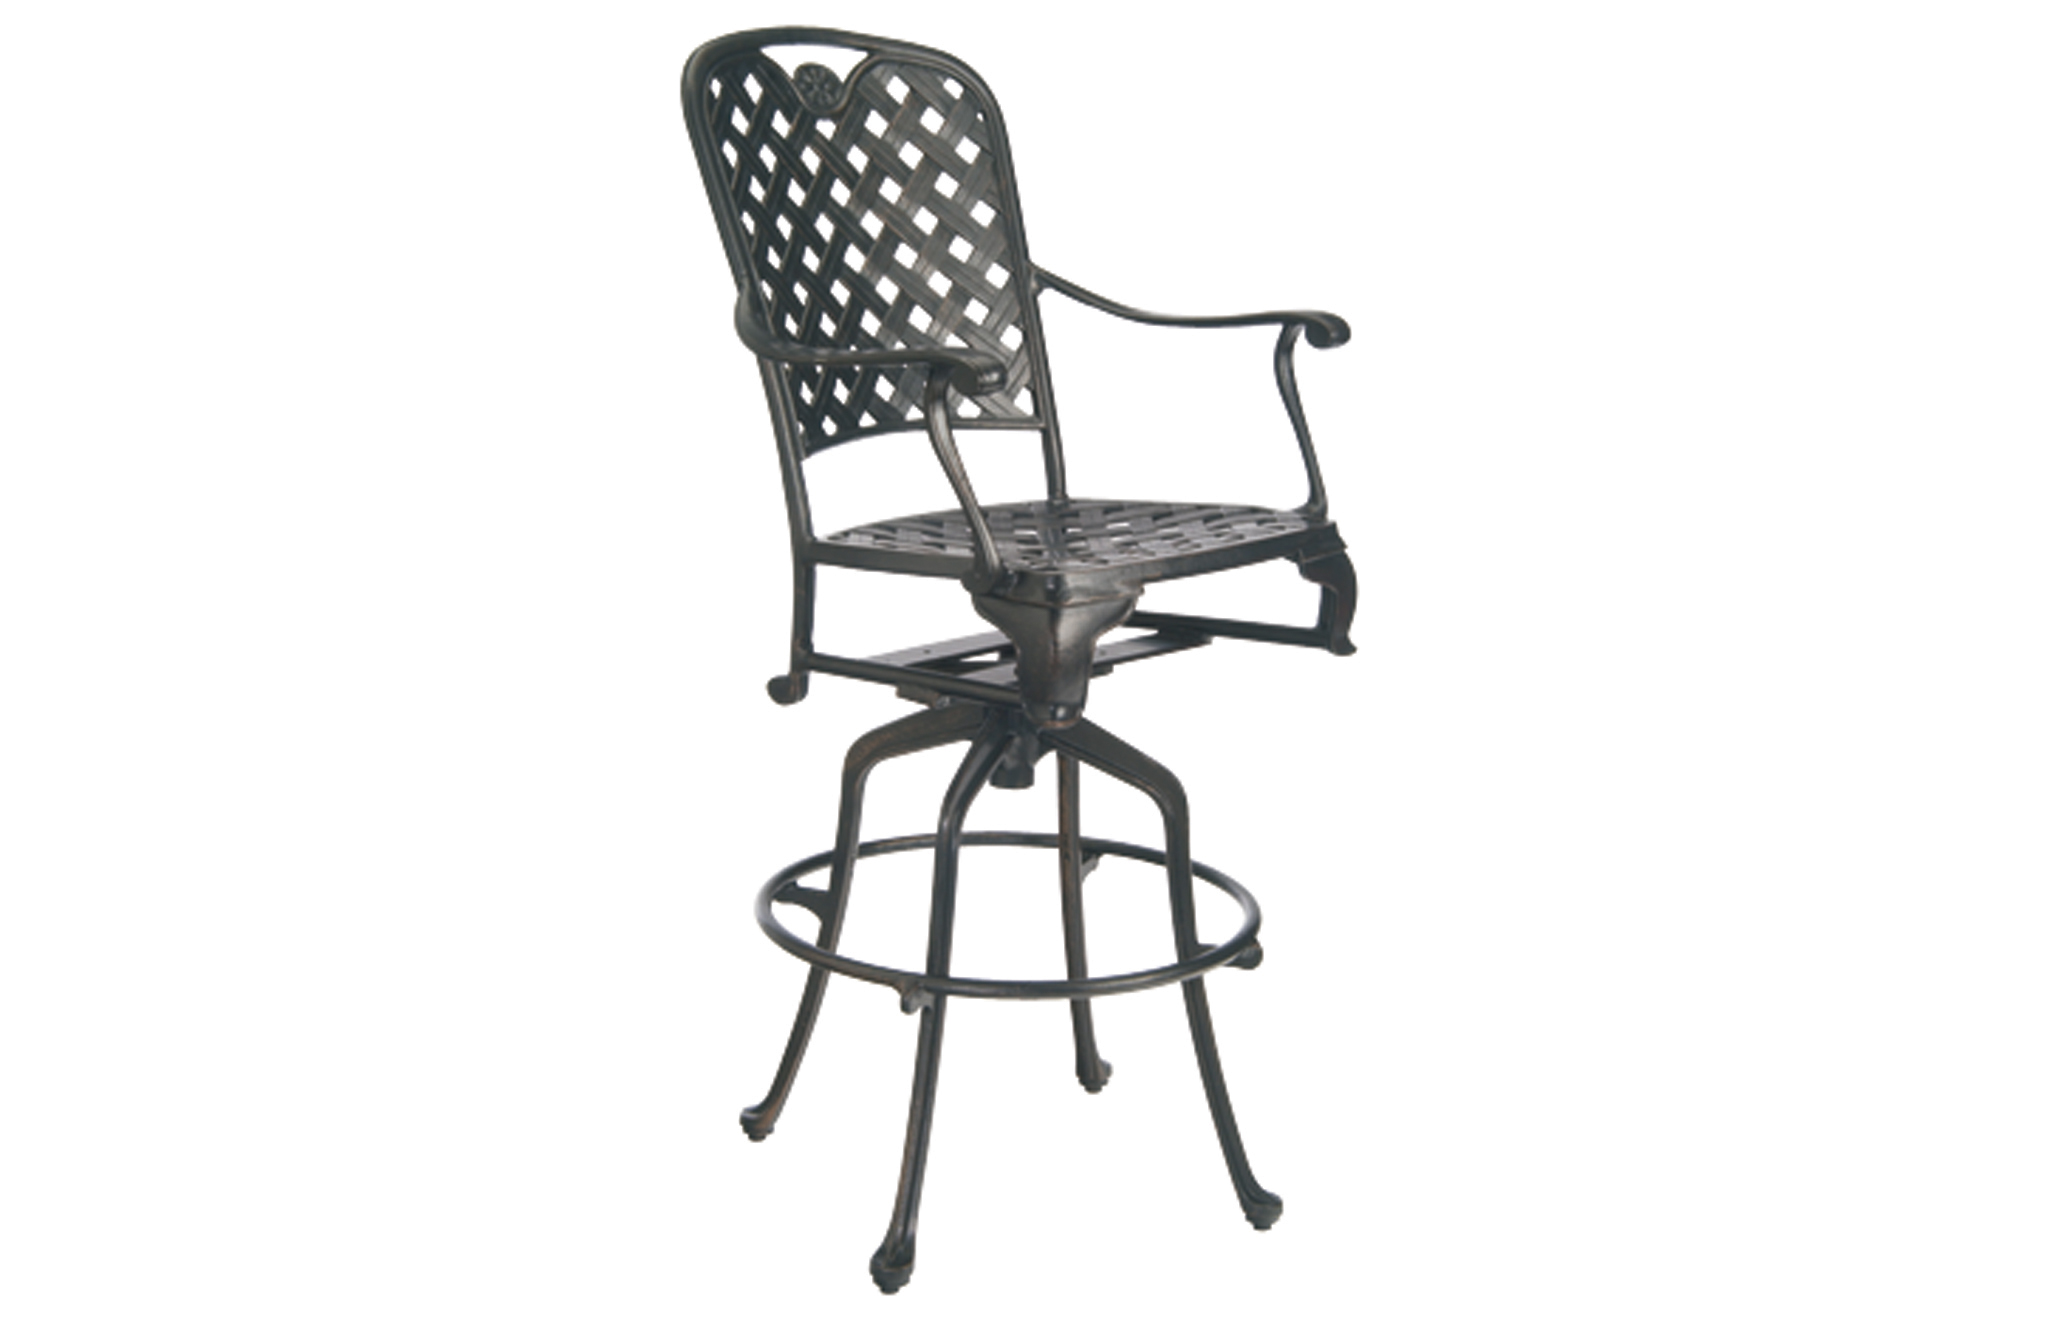 100 Summer Style Outdoor Chairs That Wire